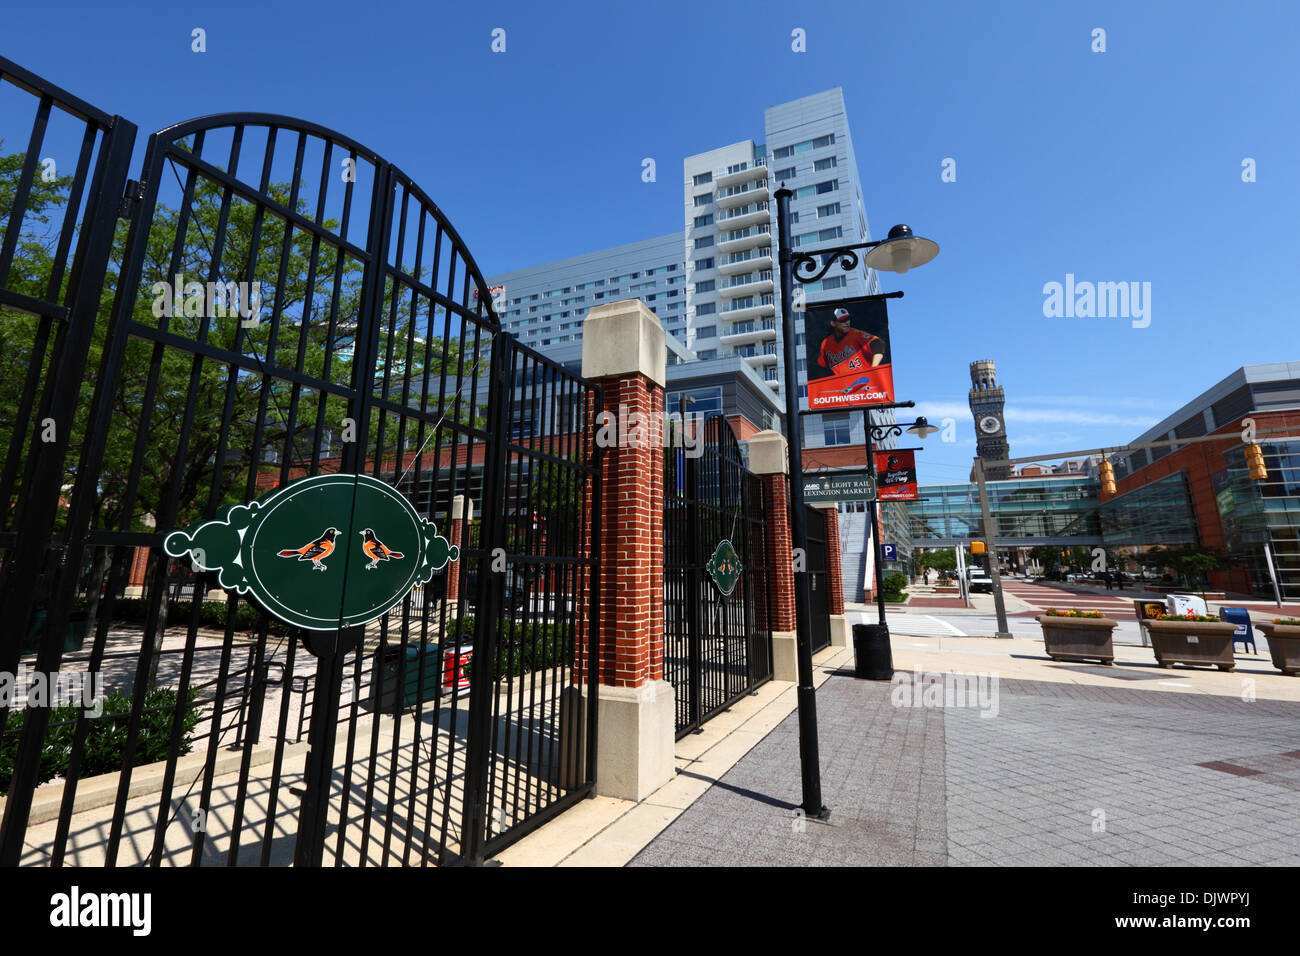 Entrance To Oriole Park Home Of Baltimore Orioles Hilton Hotel And Bromo Seltzer Tower In Background USA